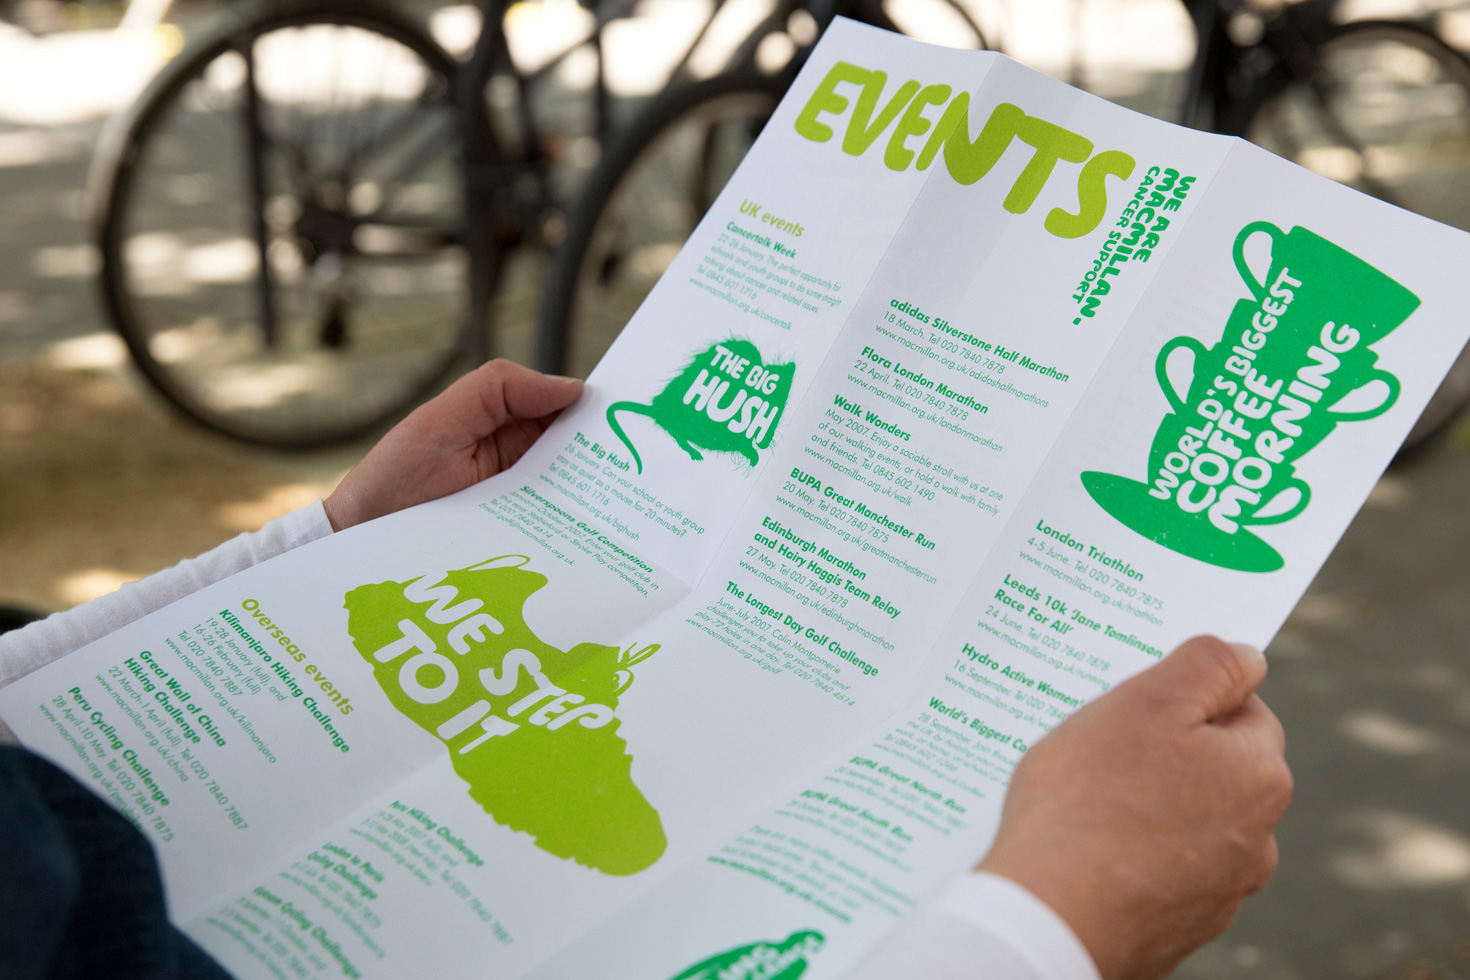 Macmillan Cancer Support events leaflet